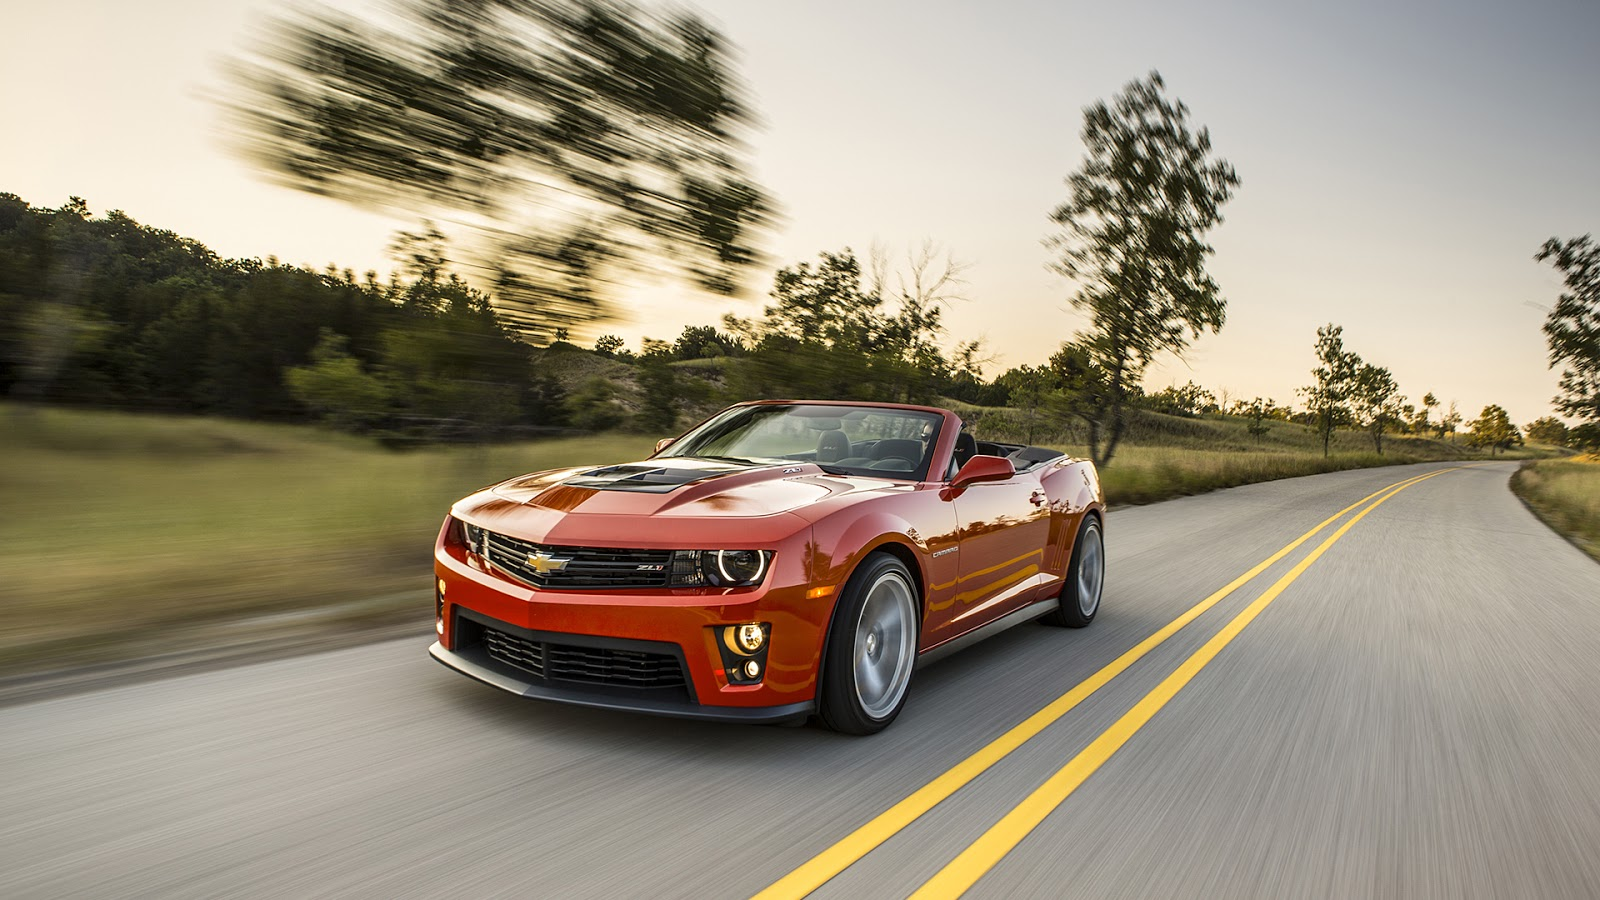 2013 Chevrolet Camaro ZL1 Convertible Wallpapers 1600x900